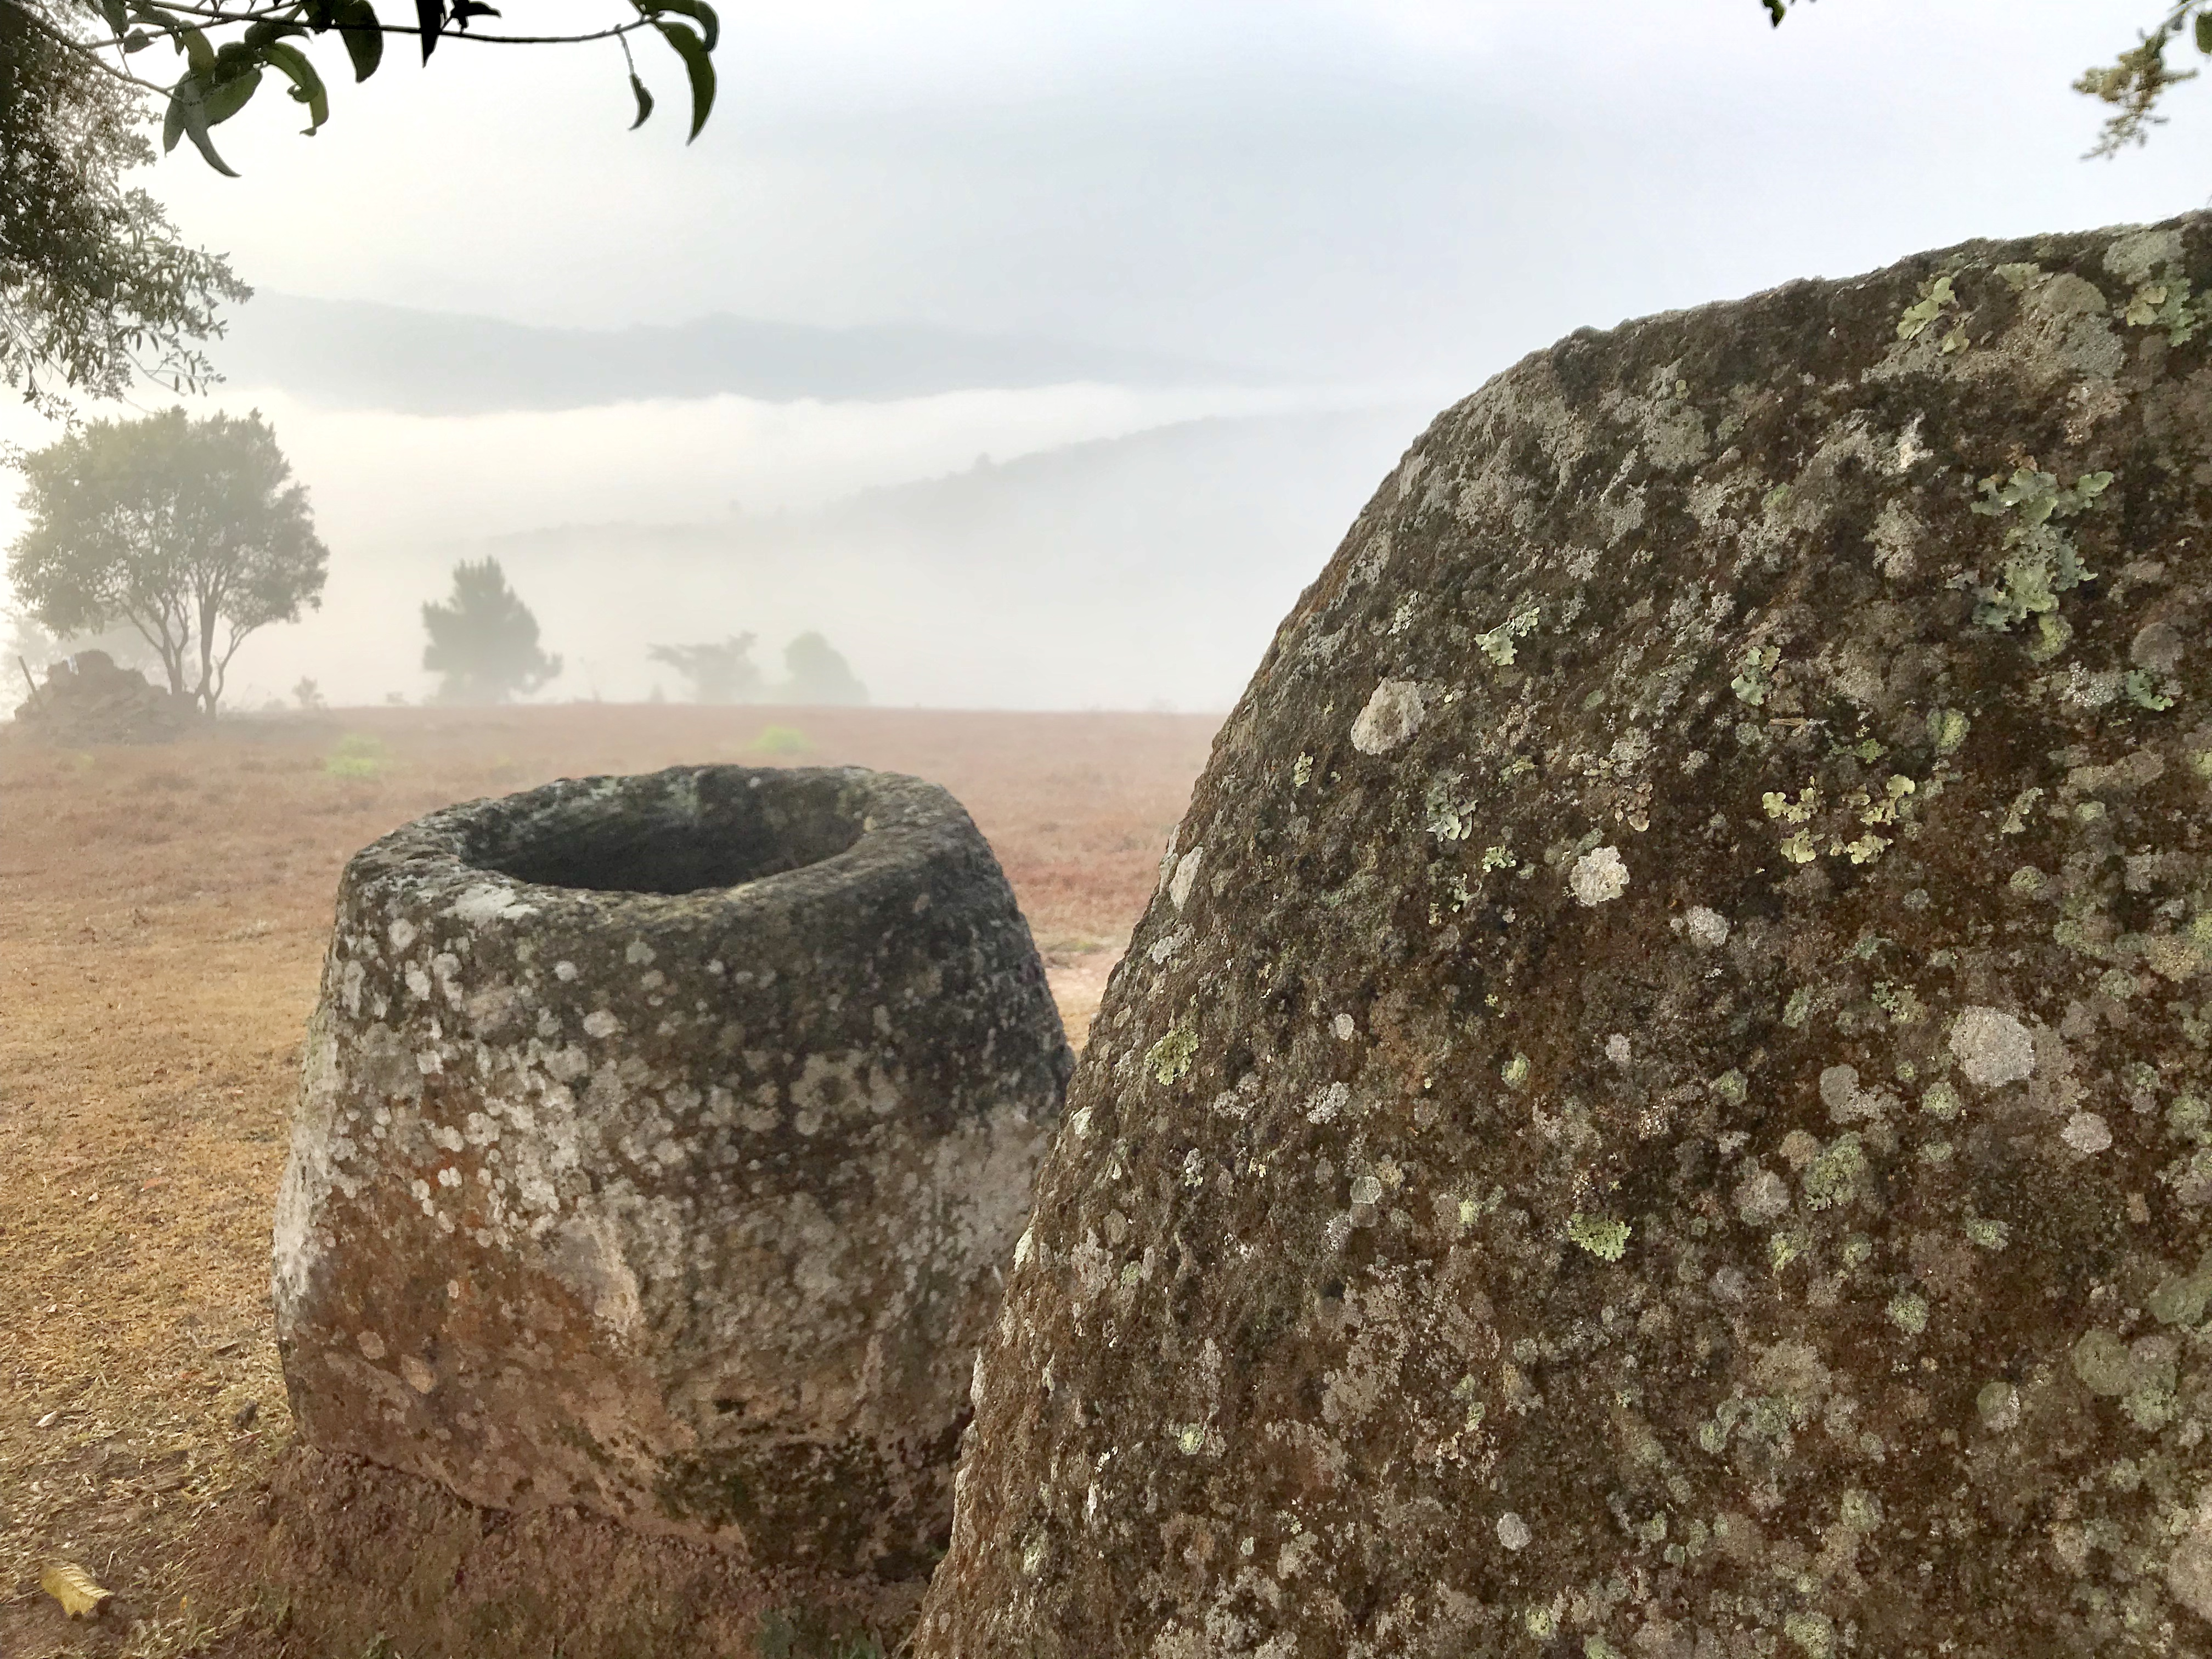 Mist day at Site 2 showing two sandstone megalithic jars